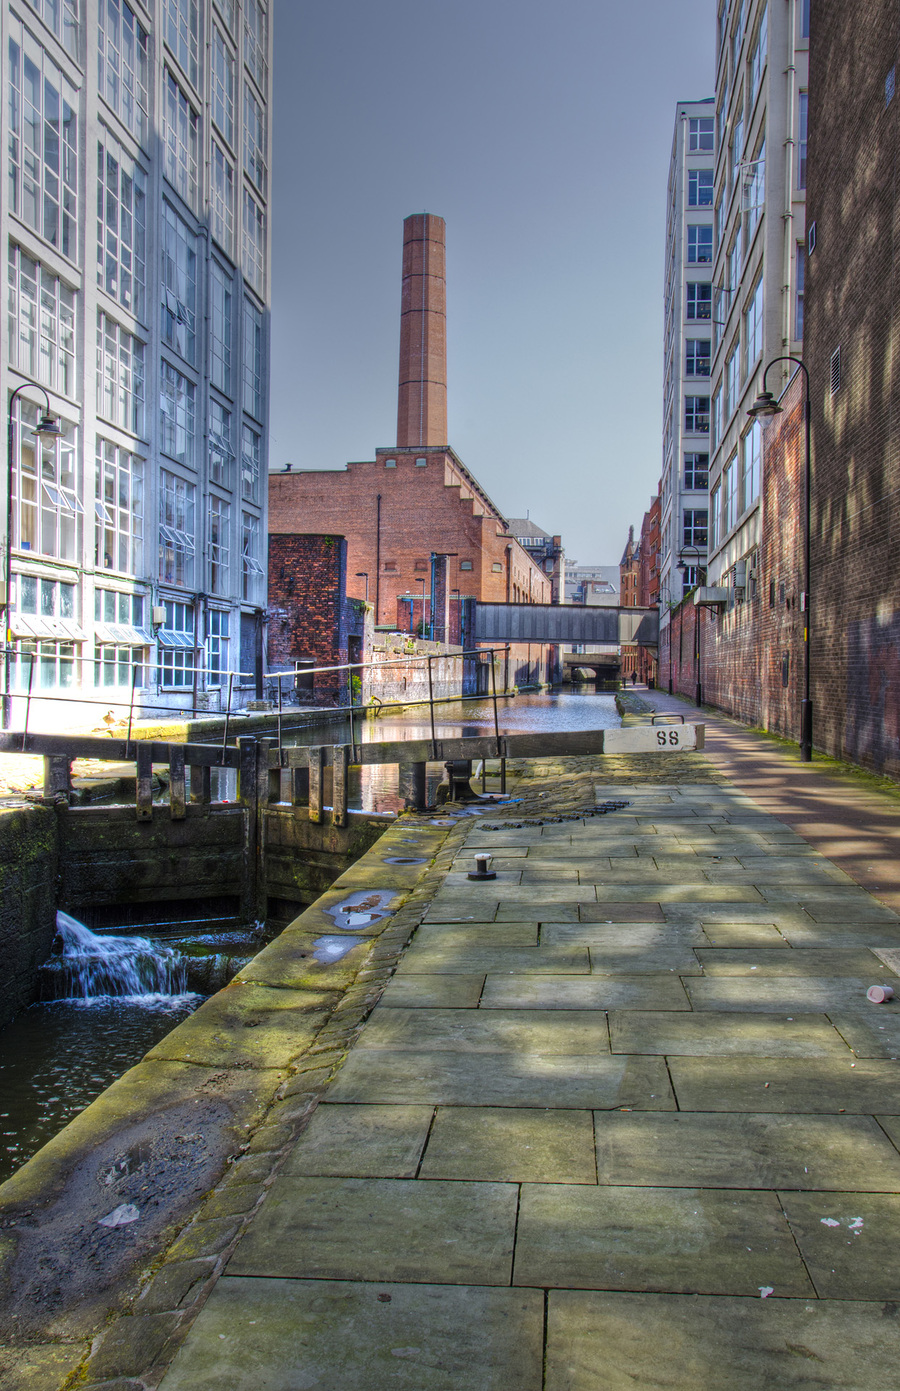 Urban canal HDR 3 / Photography by Jim K / Uploaded 6th September 2012 @ 02:37 PM